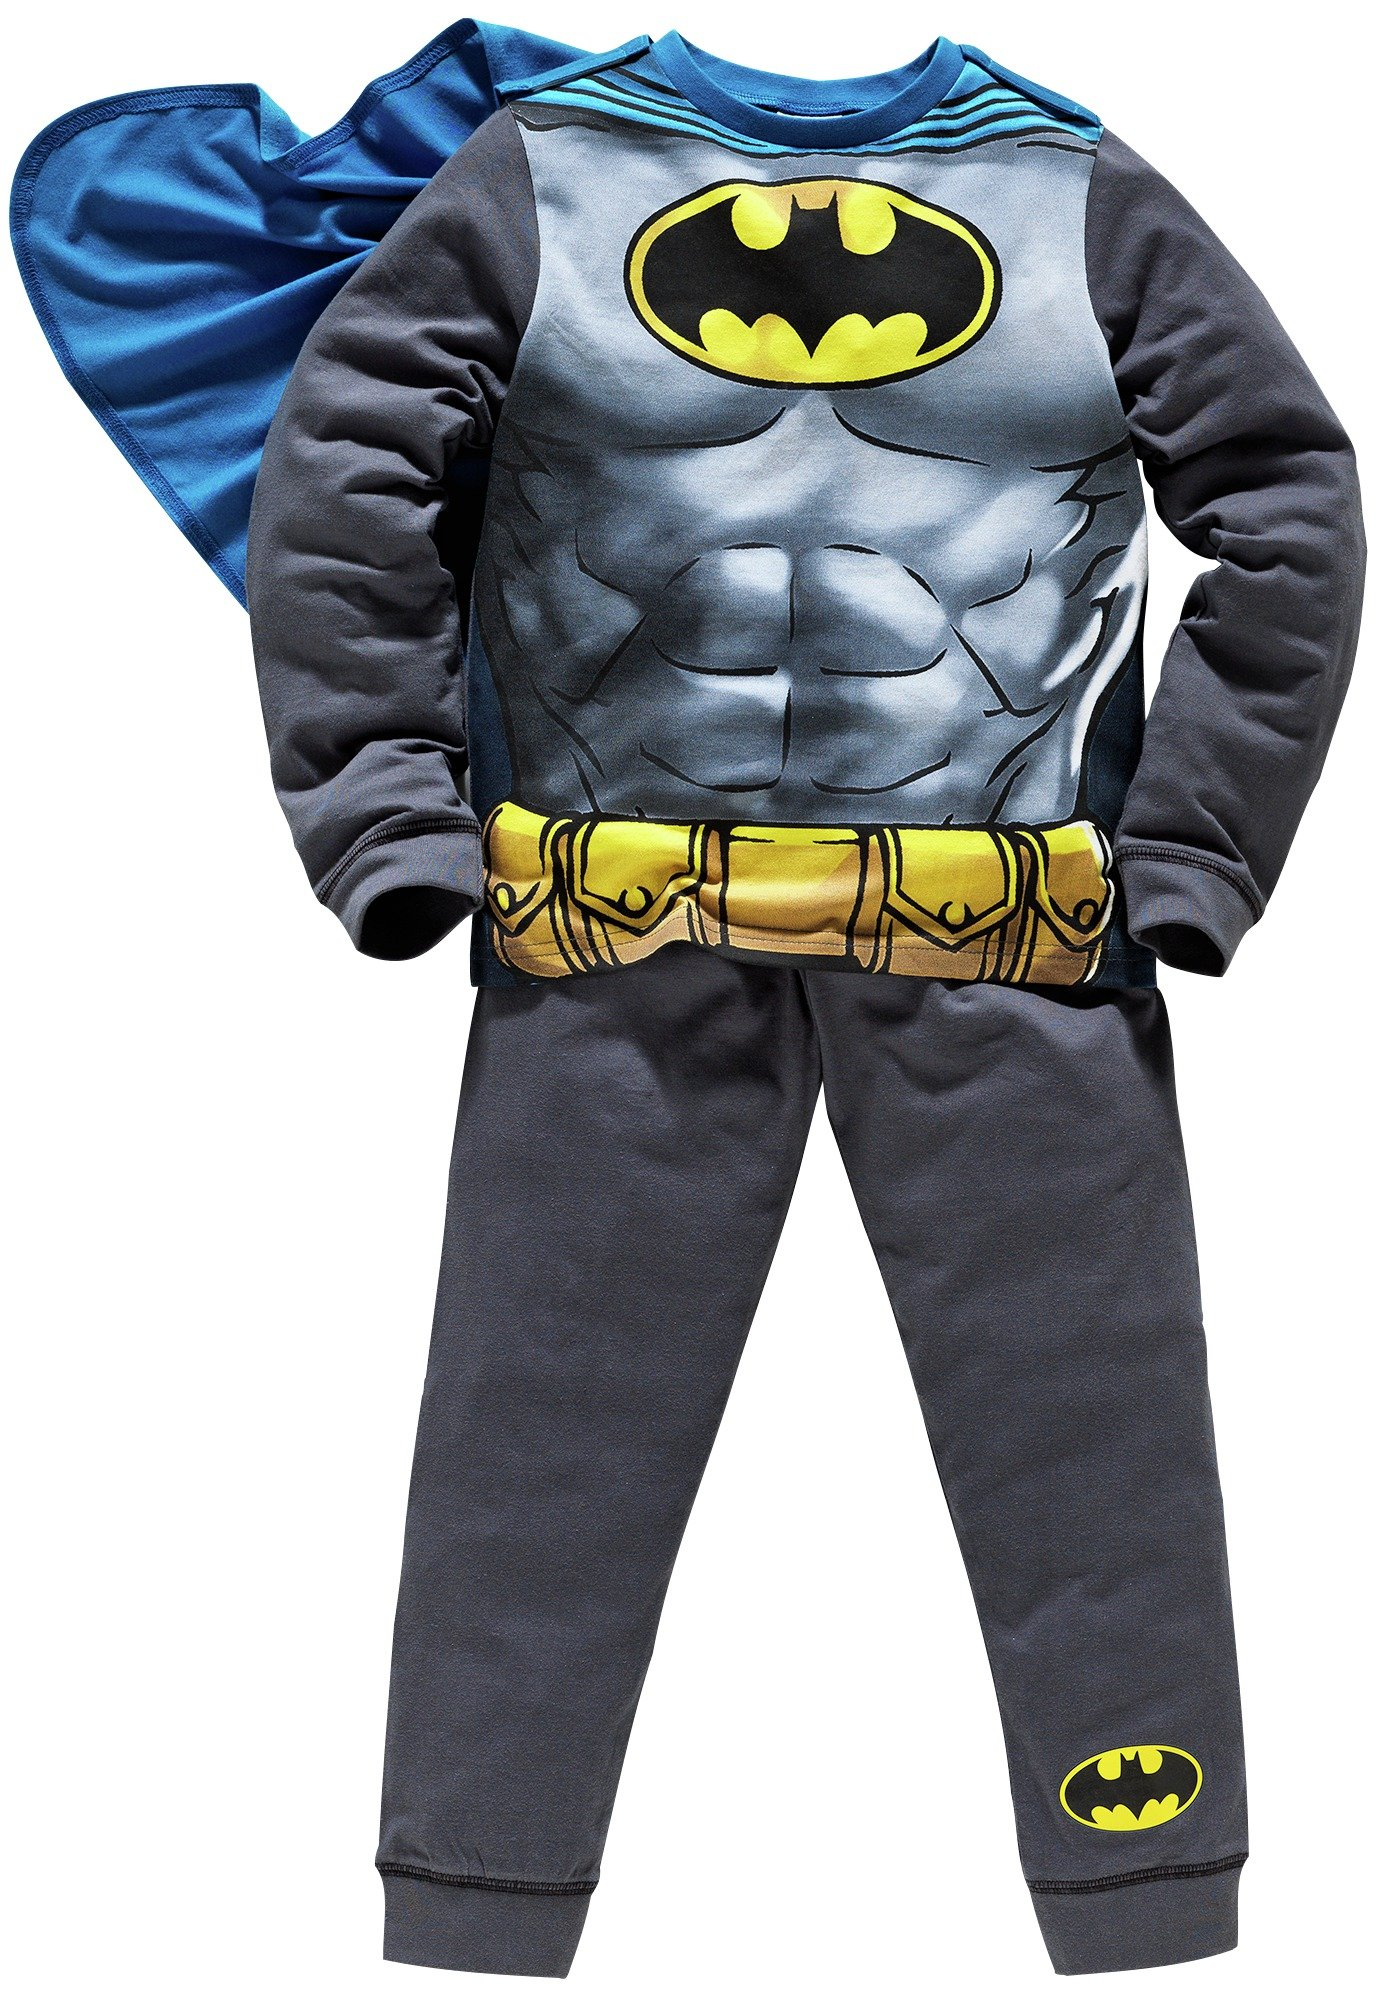 Image of Batman Novelty Pyjamas with Cape - 7-8 Years